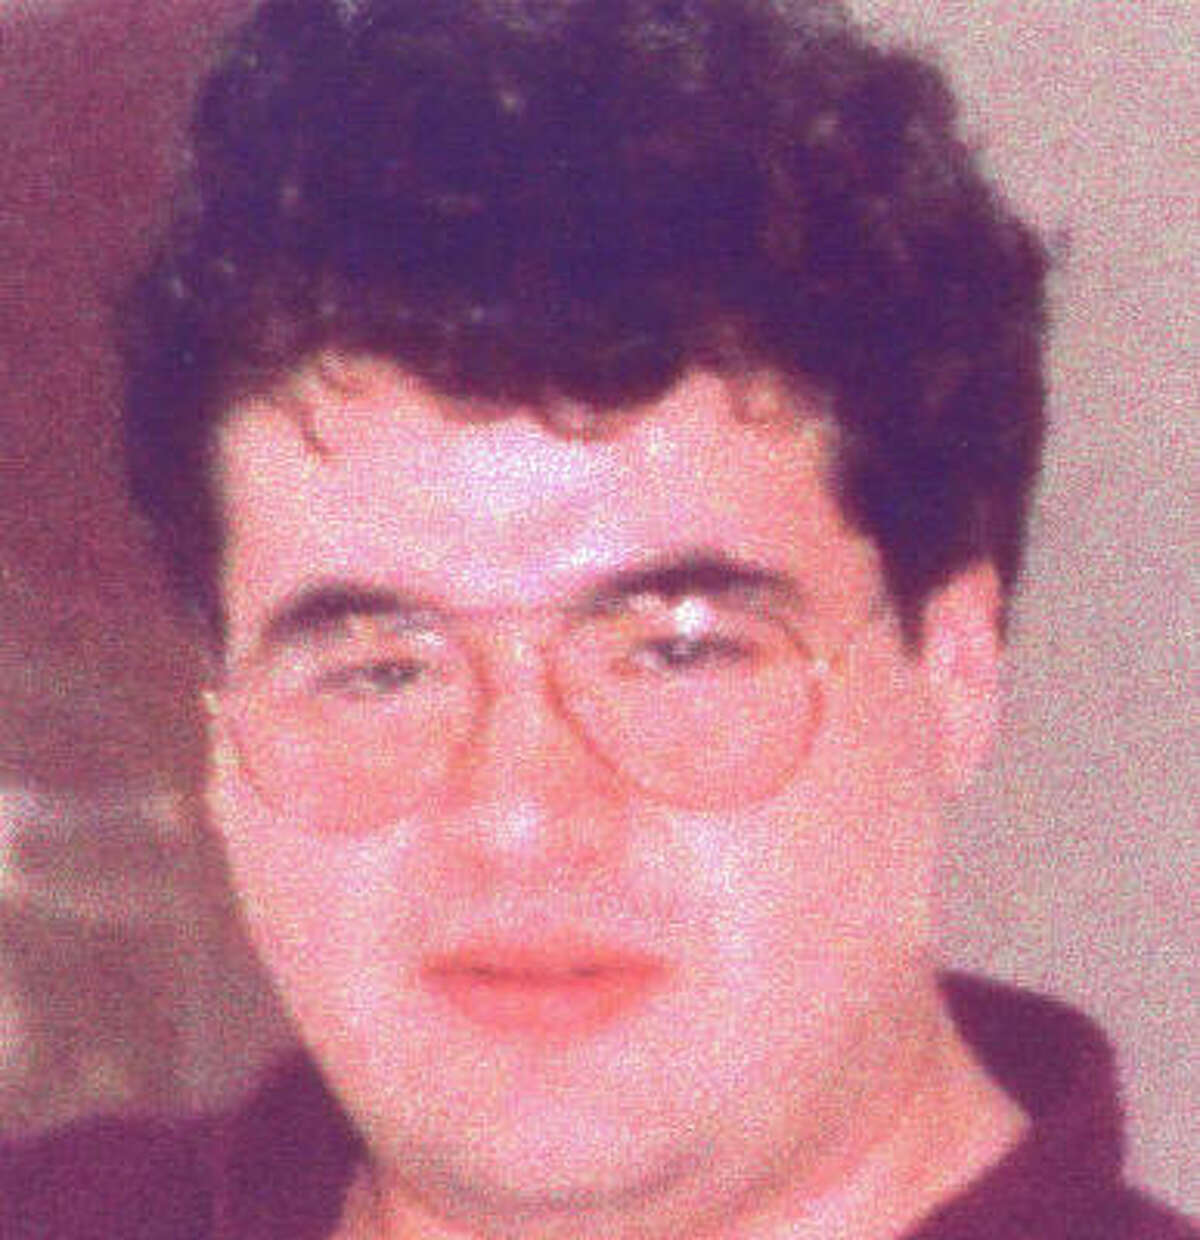 Juan Antonio Lozano is believed to have fled to Mexico, then returned to Houston.